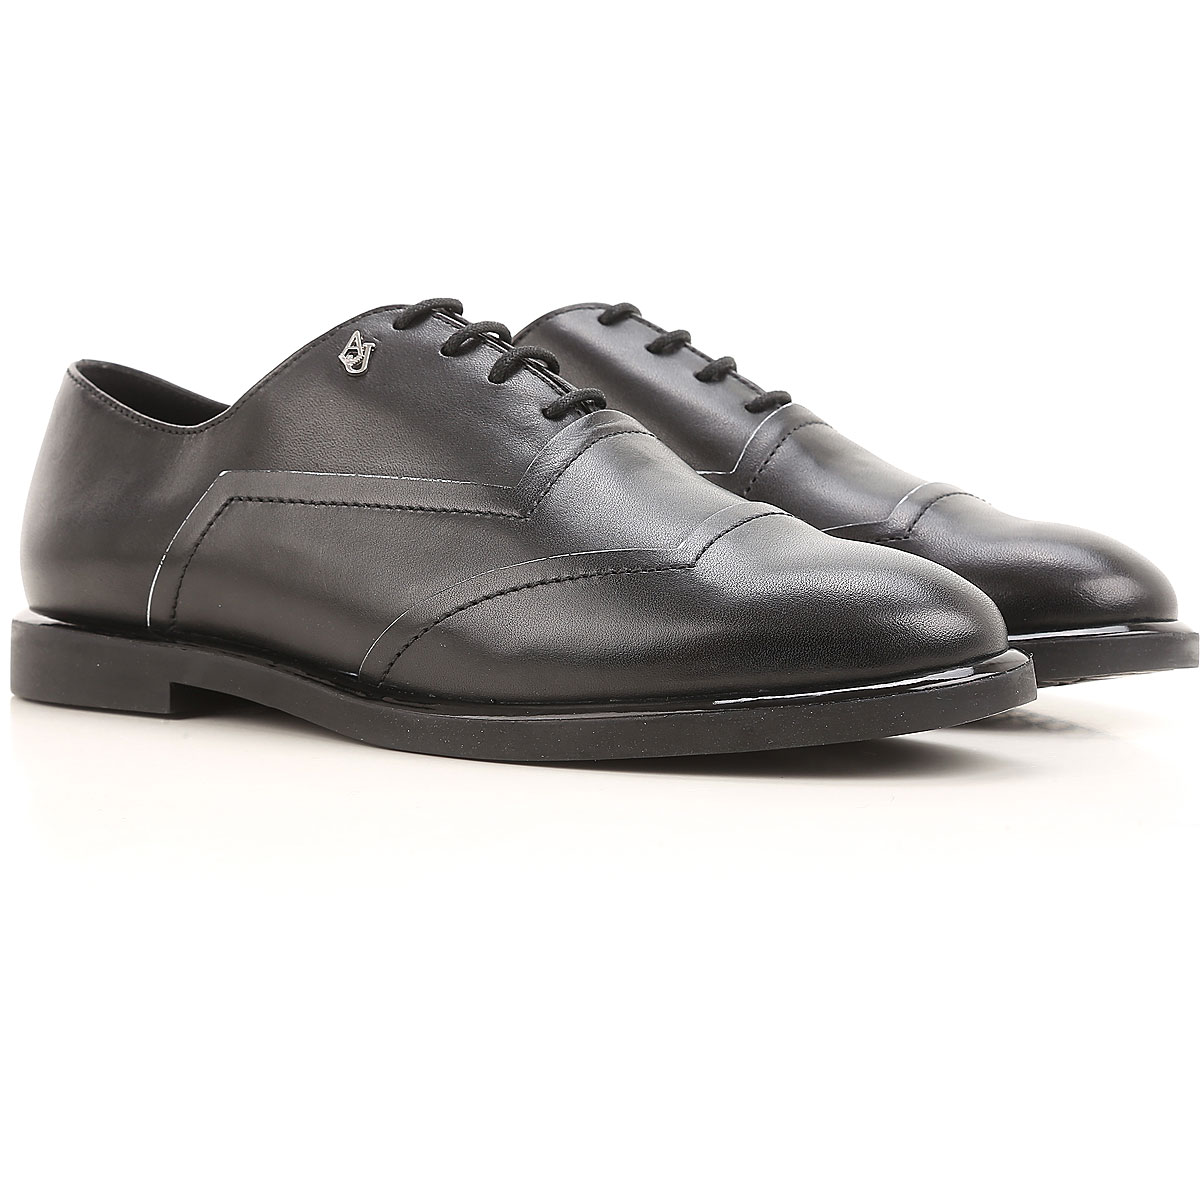 Image of Emporio Armani Lace Up Shoes for Men Oxfords, Derbies and Brogues On Sale, Black, Leather, 2017, 10 6 7 8